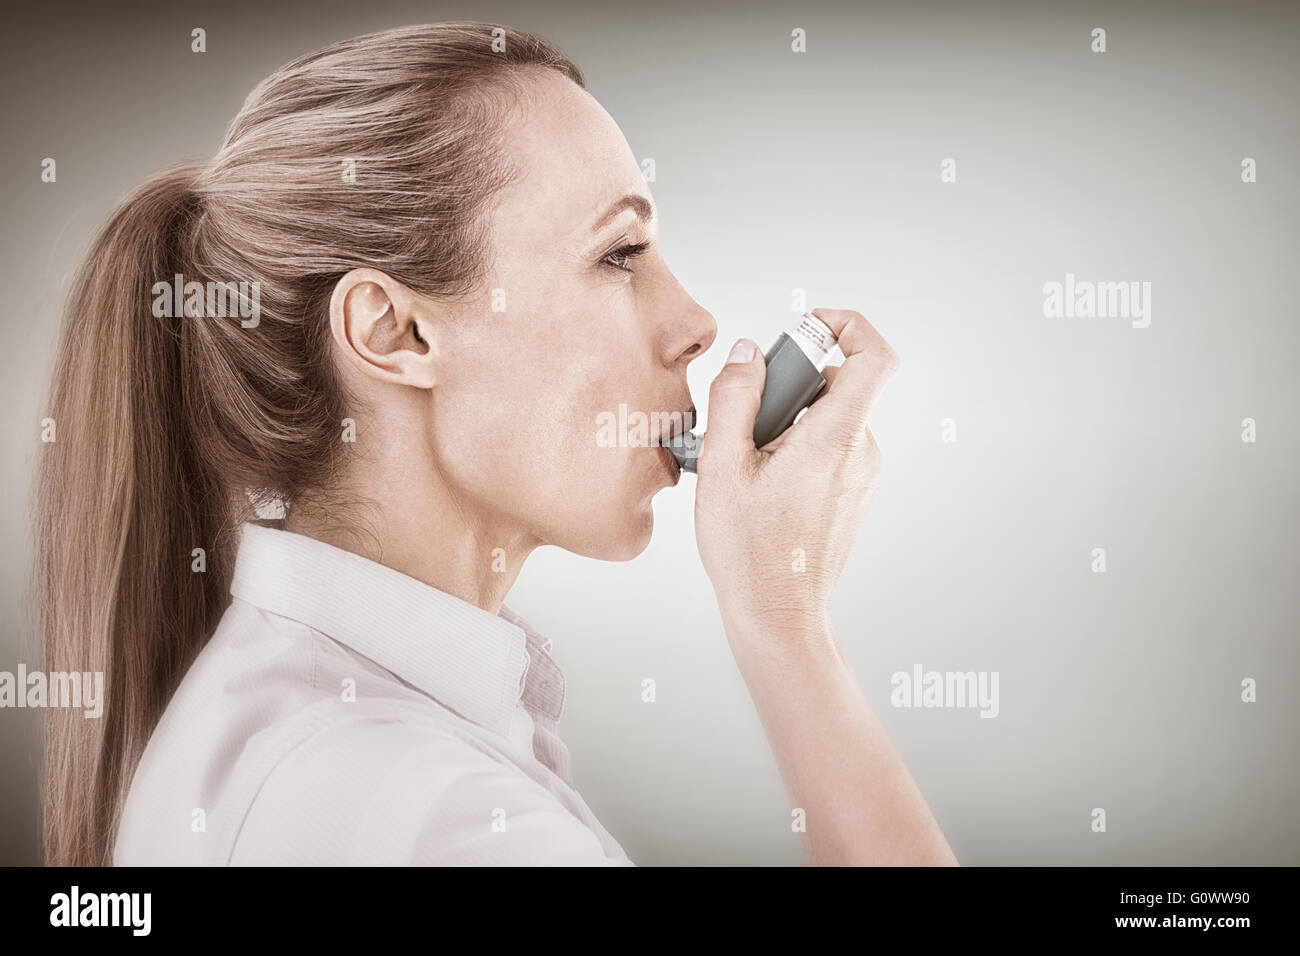 Composite image of pretty blonde using an asthma inhaler - Stock Image